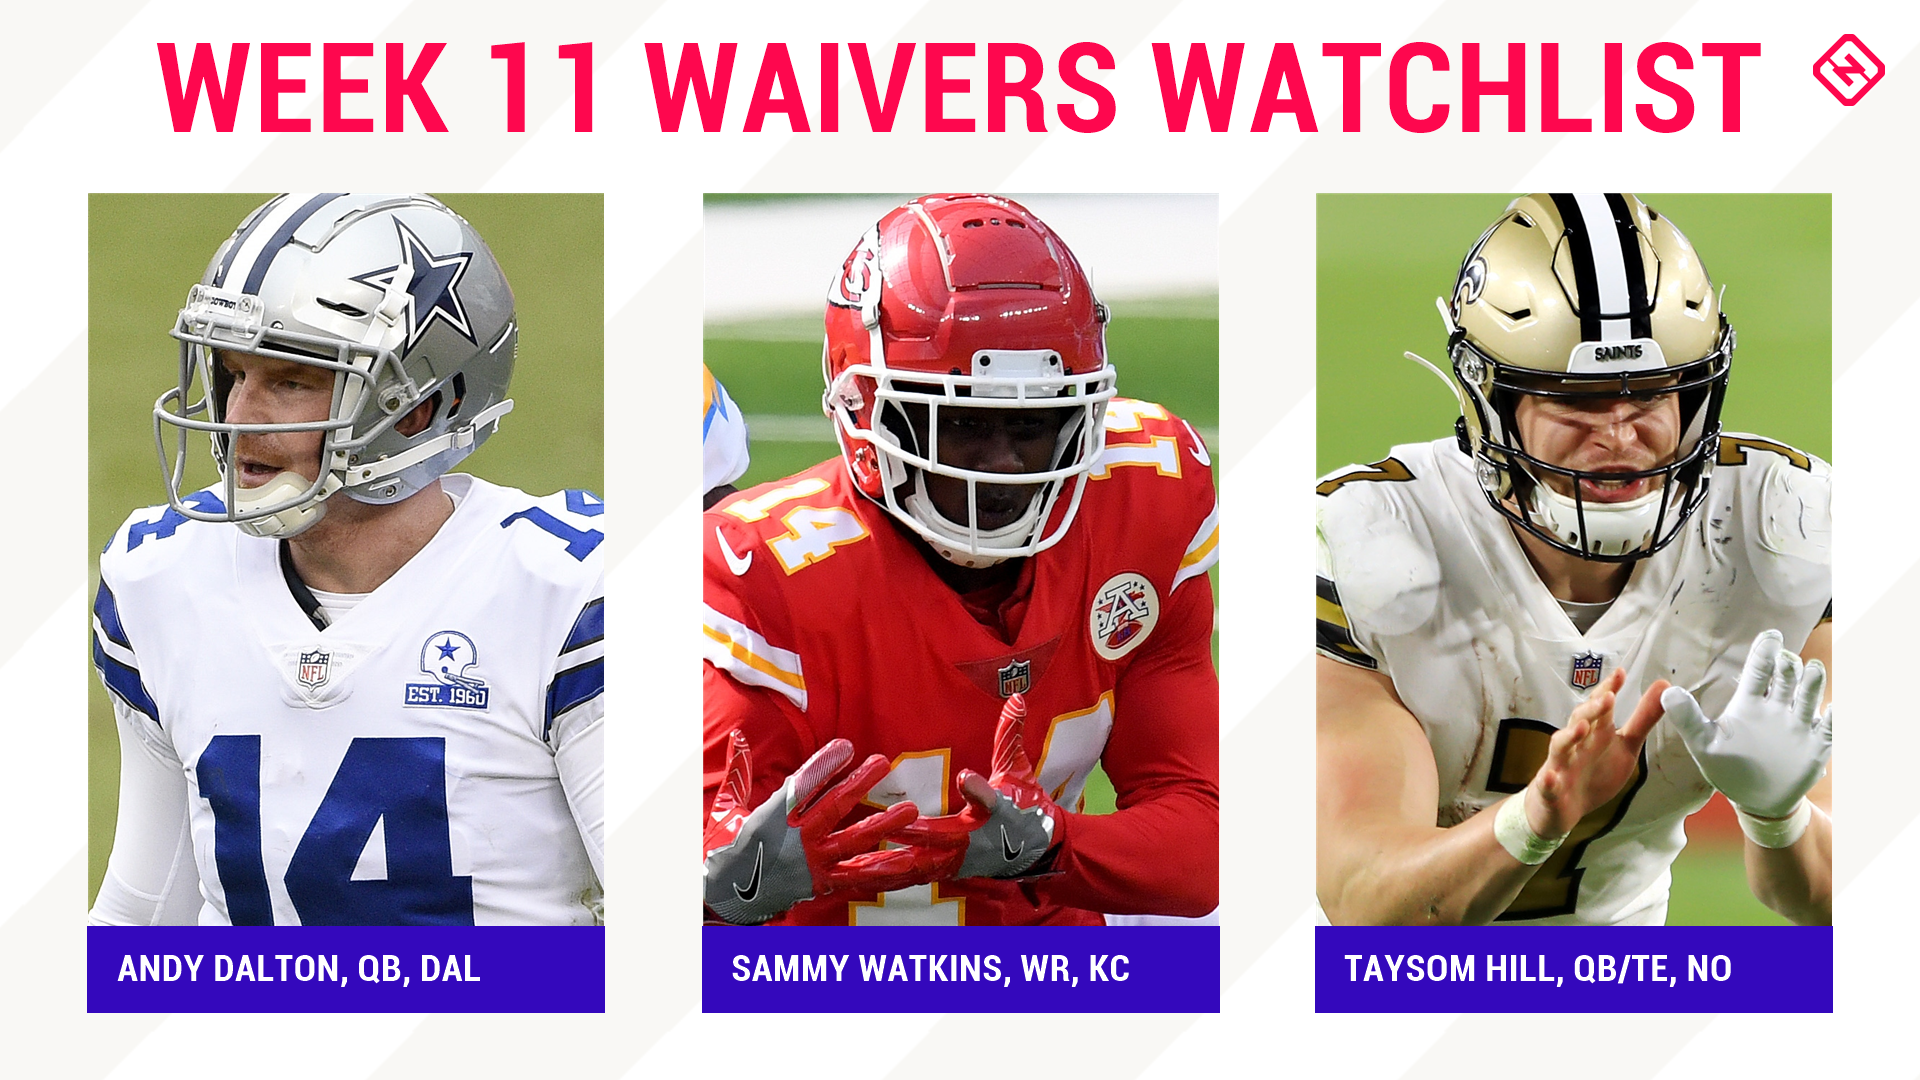 Fantasy Football Waiver Wire Watchlist for Week 11: Streaming targets, free agent sleepers include Andy Dalton, Sammy Watkins, Taysom Hill